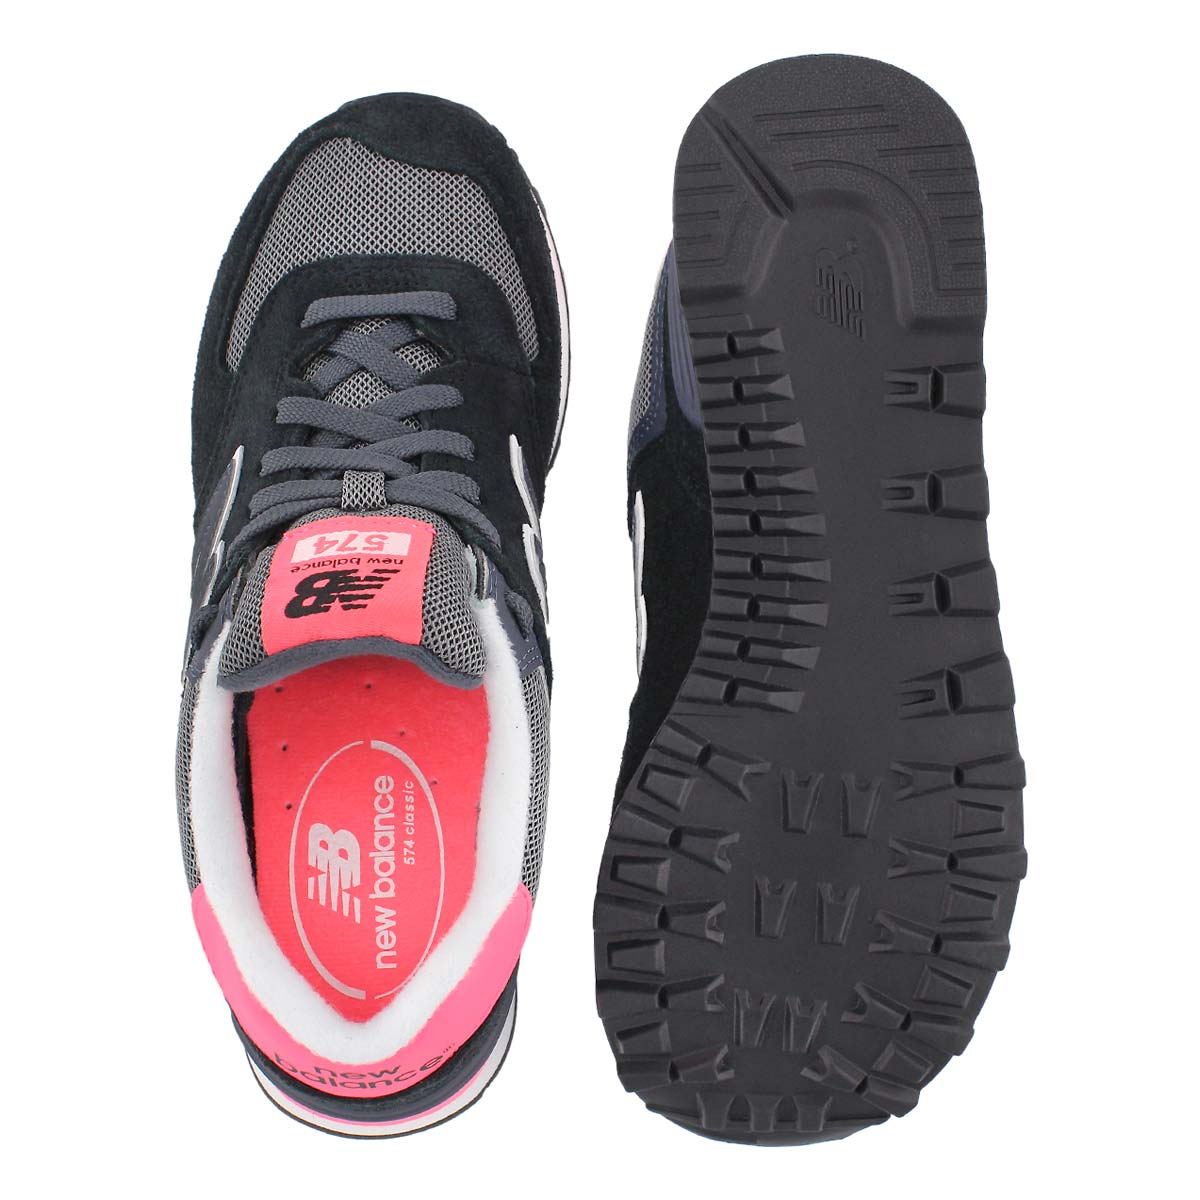 Lds 574 black/coral lace up sneaker